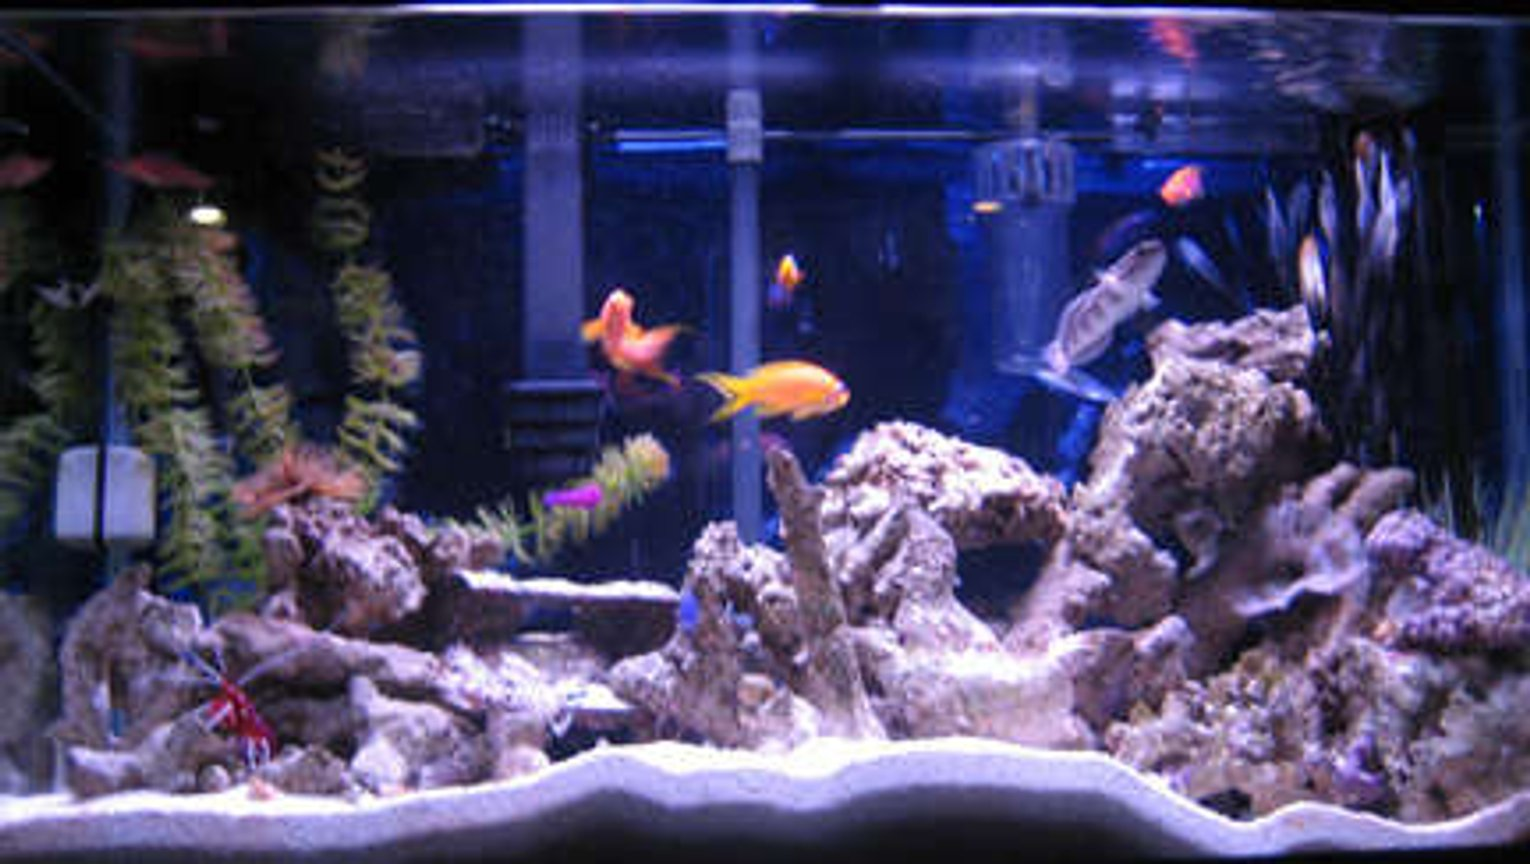 38 gallons reef tank (mostly live coral and fish) - fish tank 1 with fish, inverts, and live rock